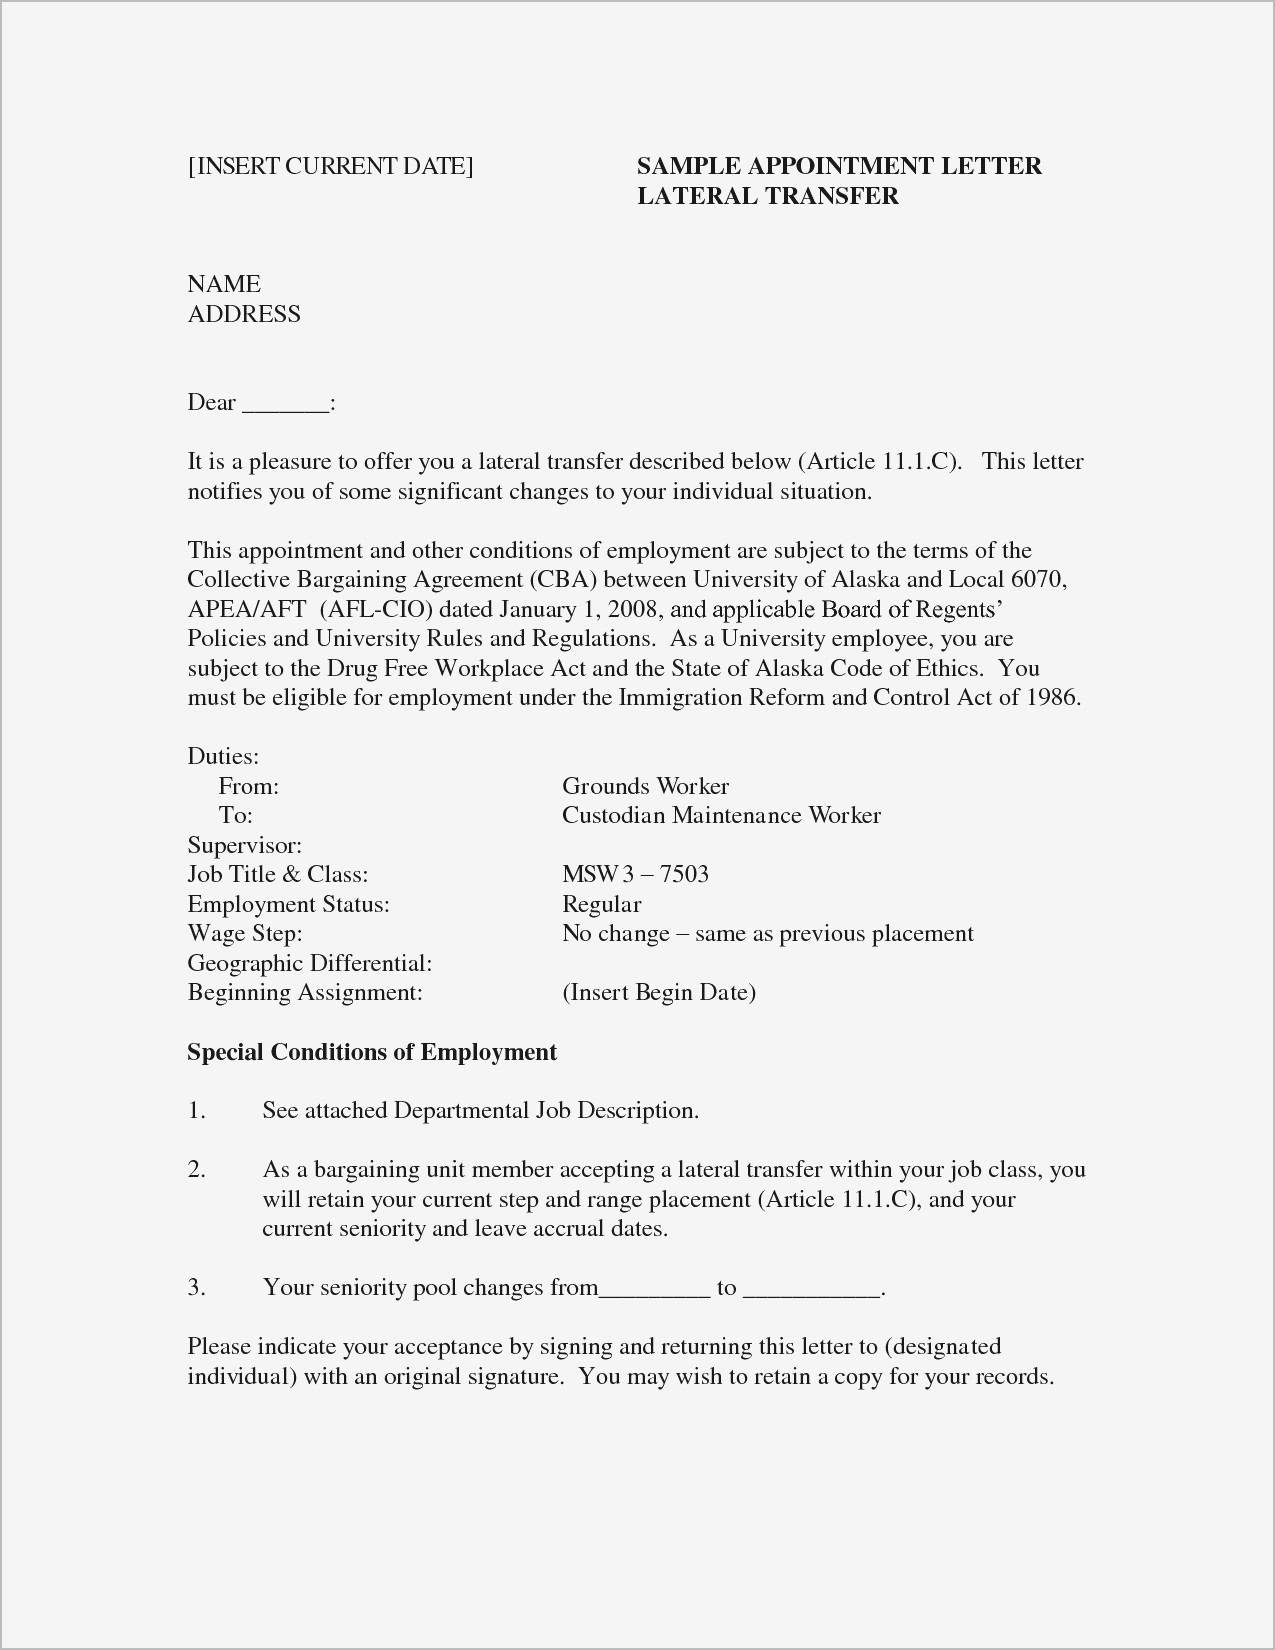 Home Offer Letter Template - Sample for Job Fer Letter Valid Job Fer Letter Template Us Copy Od